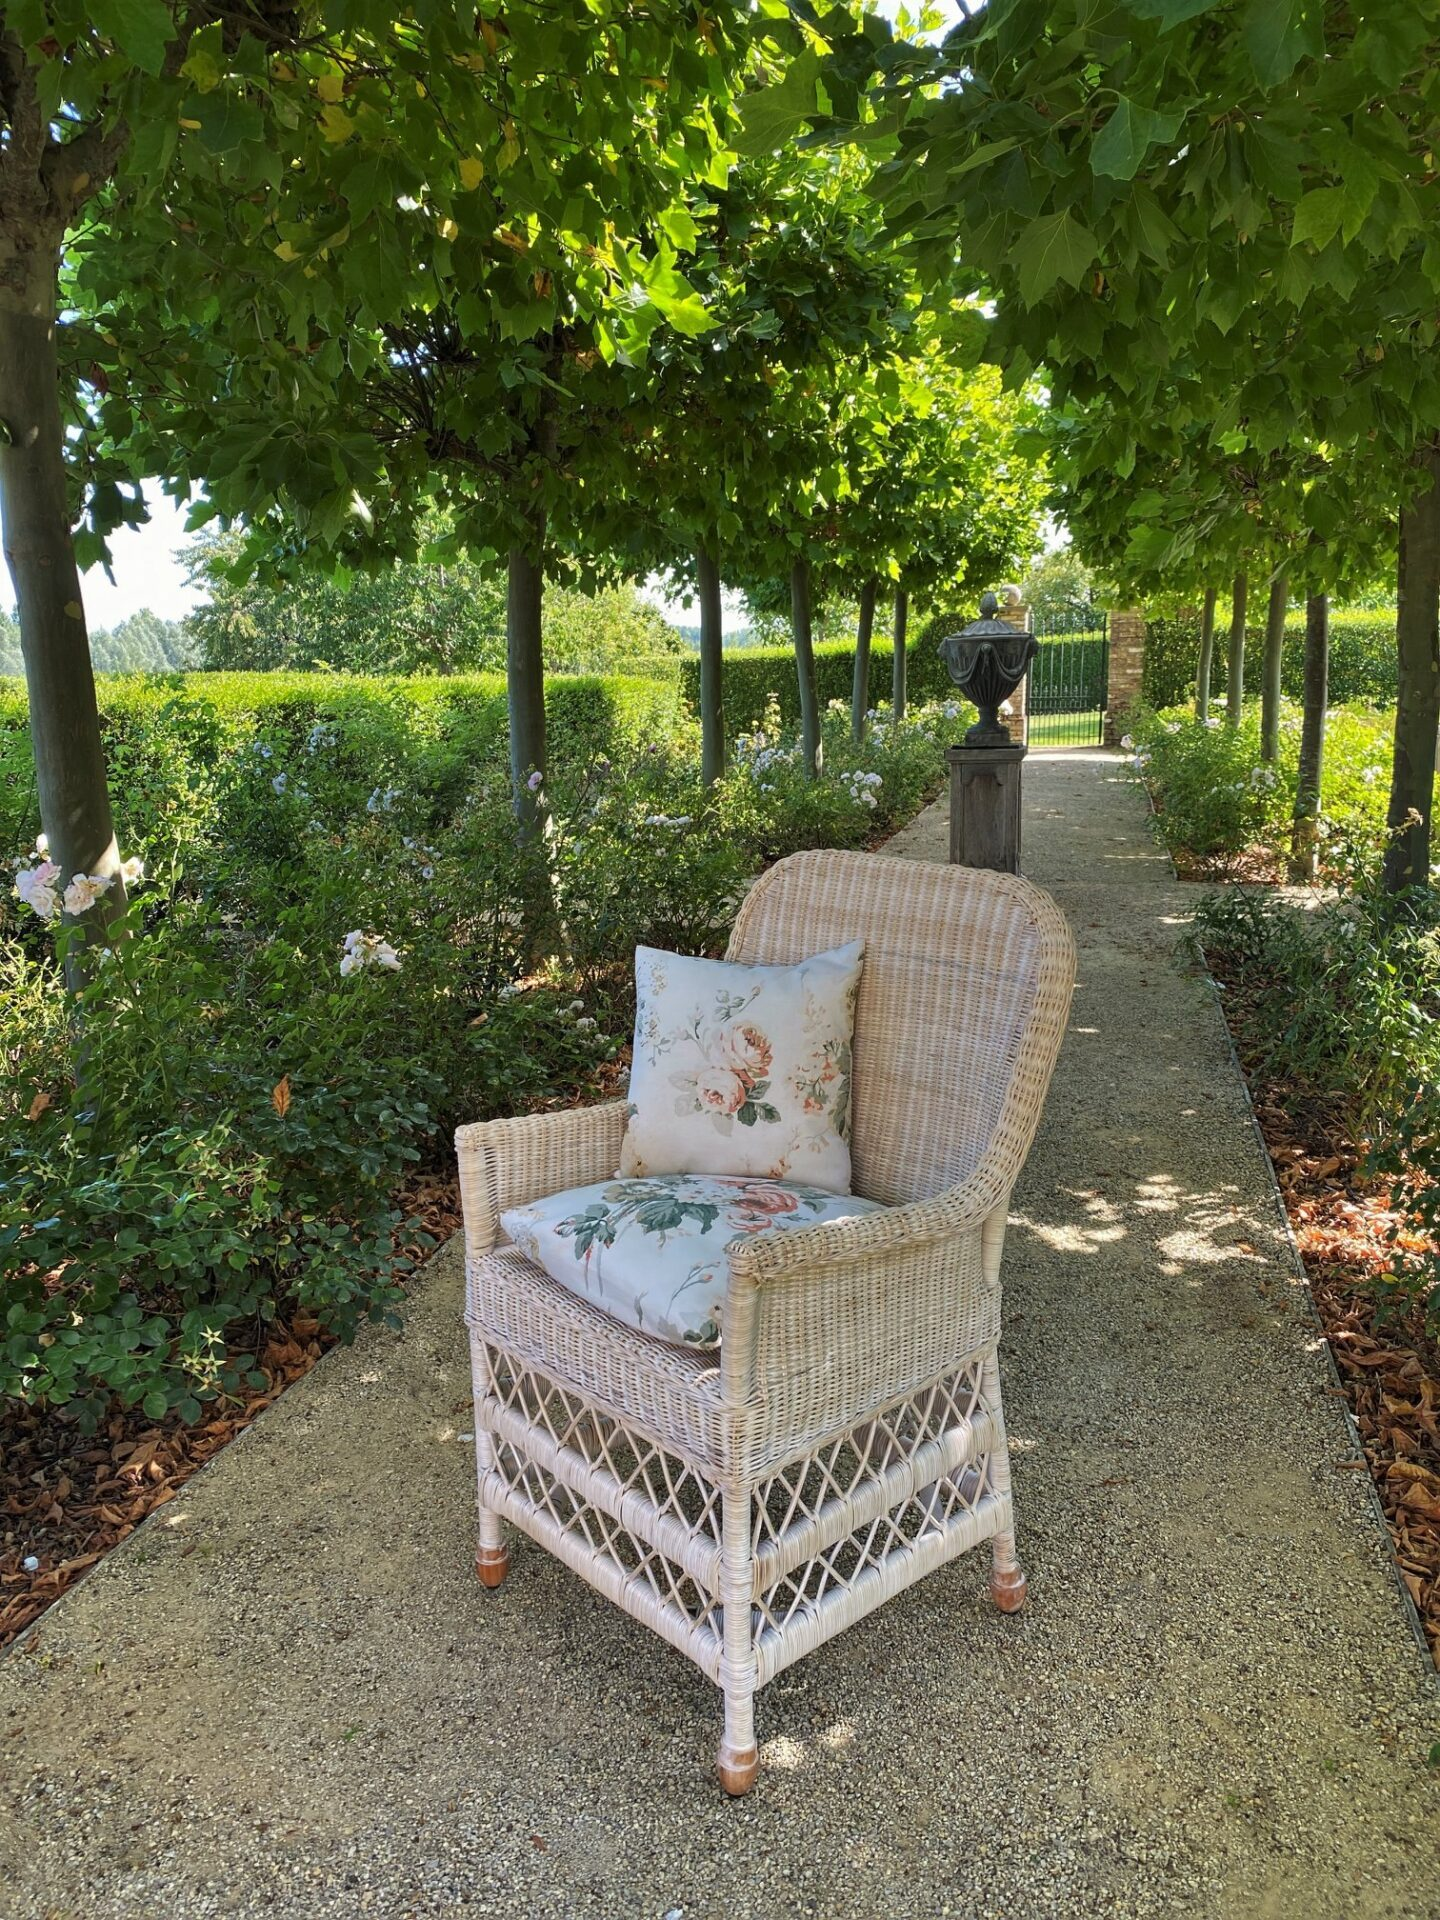 Mimi chair: Timeless design in the Belgian home and gardens of Greet Lefèvre. #belgianstyle #europeancountry